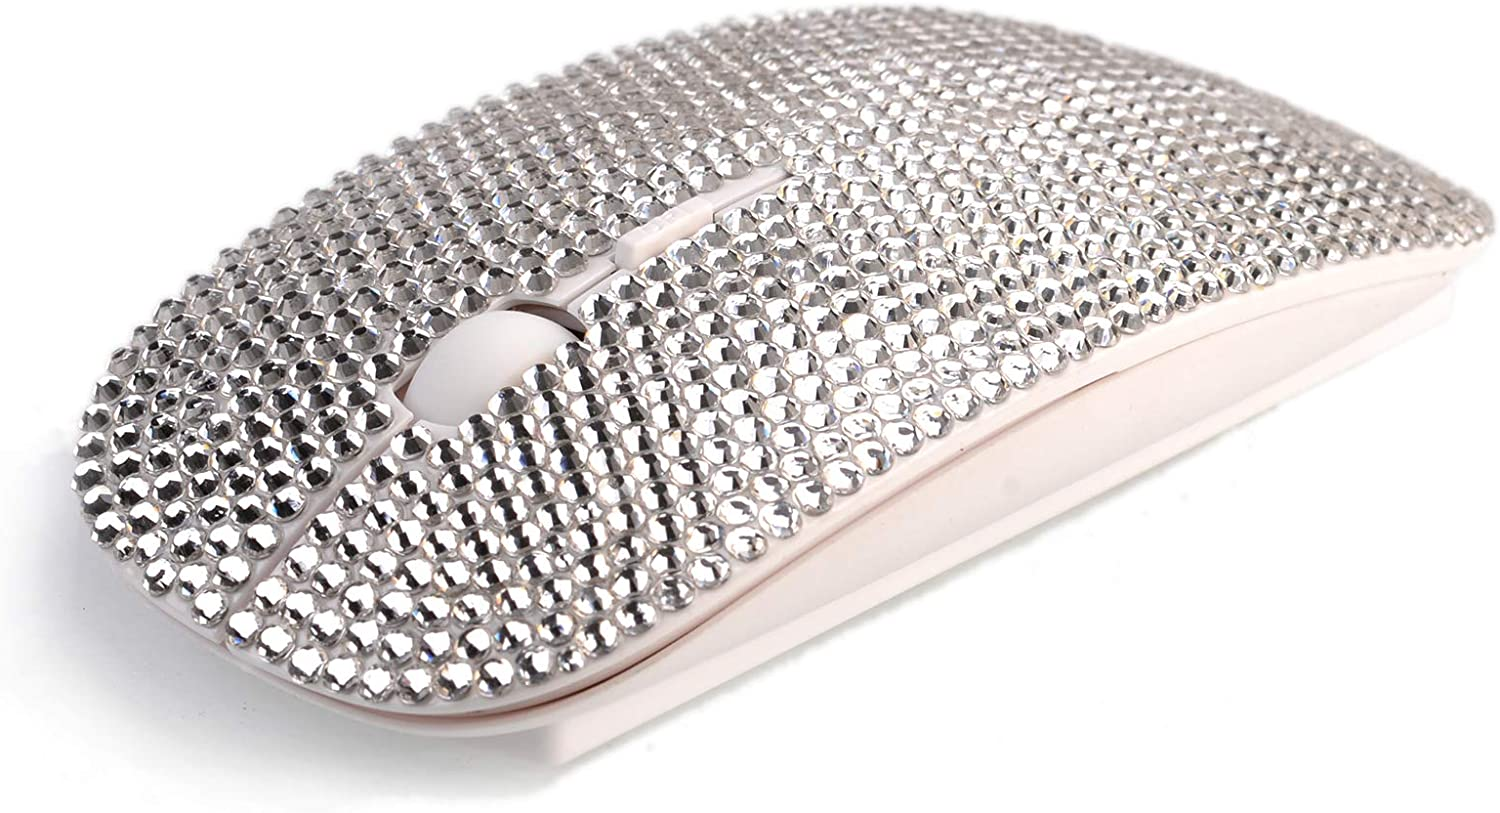 SA@ Bling Wireless Mouse, Silver Rhinestone Wireless Mouse Sparkle Computer Mouse with USB Receiver for Girls, Bedazzled Cute Mice for Laptop, PC, Notebook, MacBook Gift